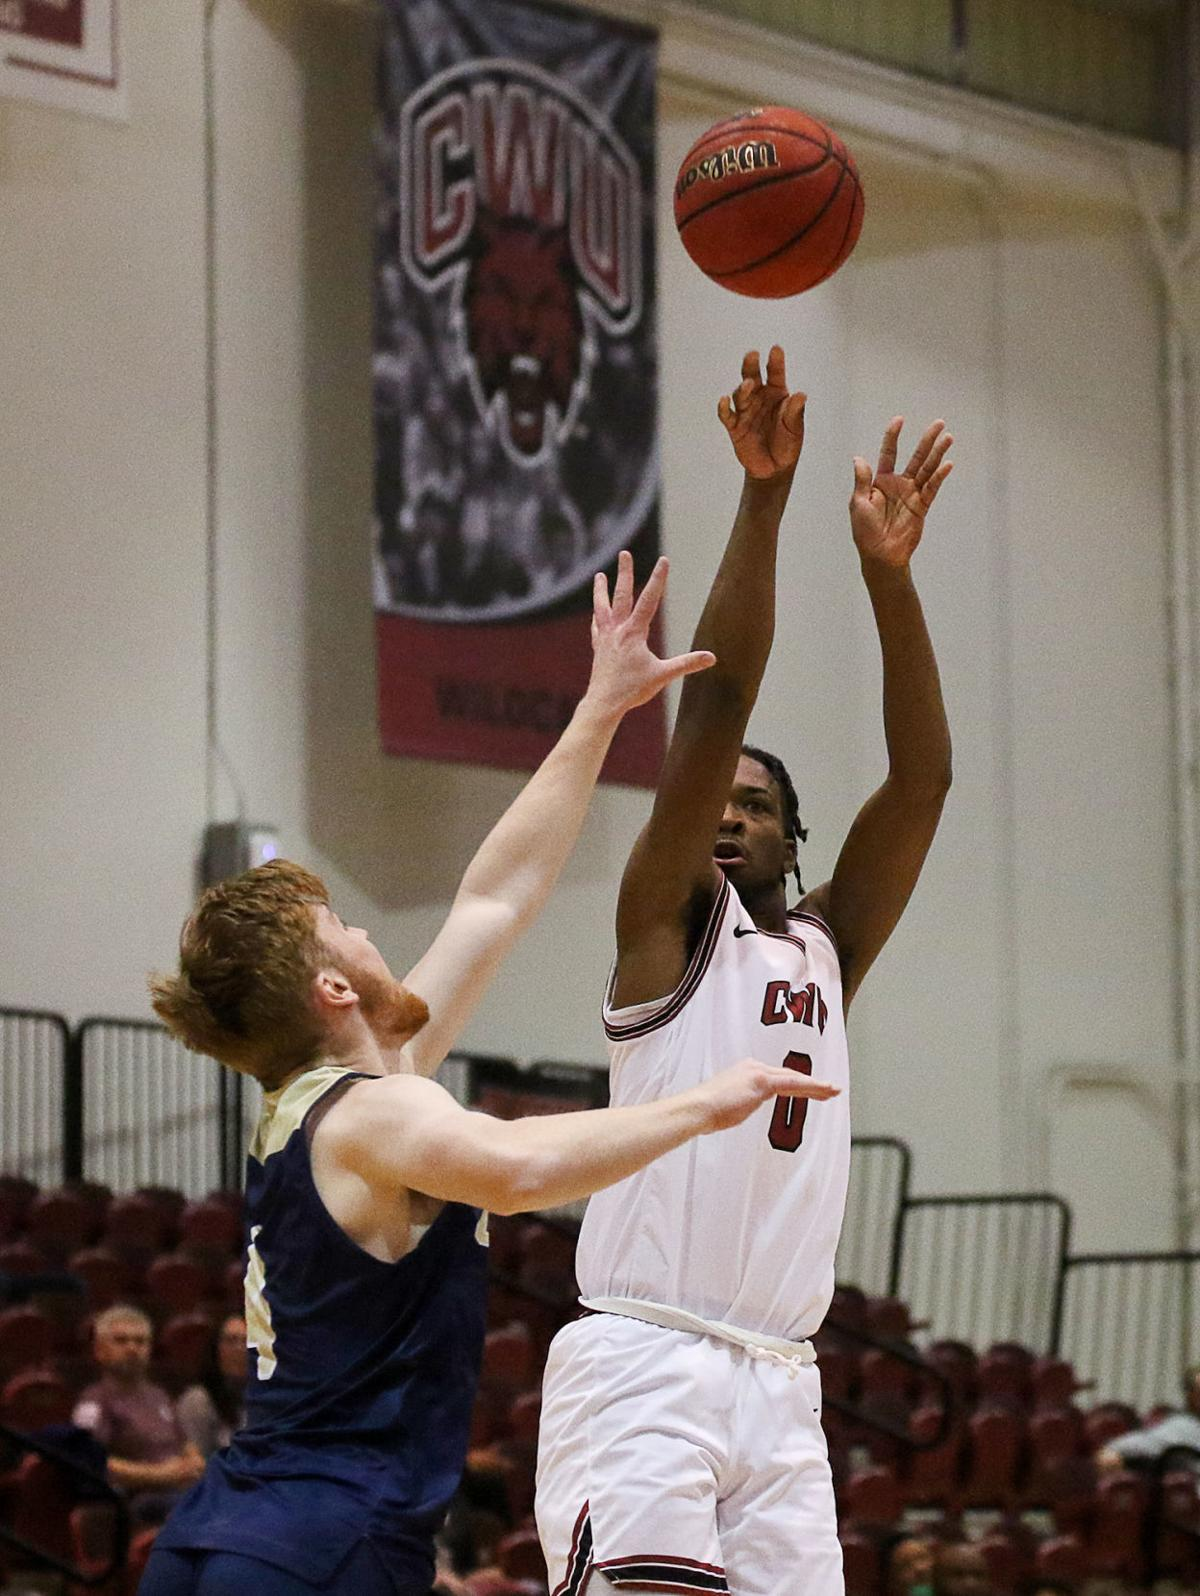 CWU_CSMB_Men_bball_01